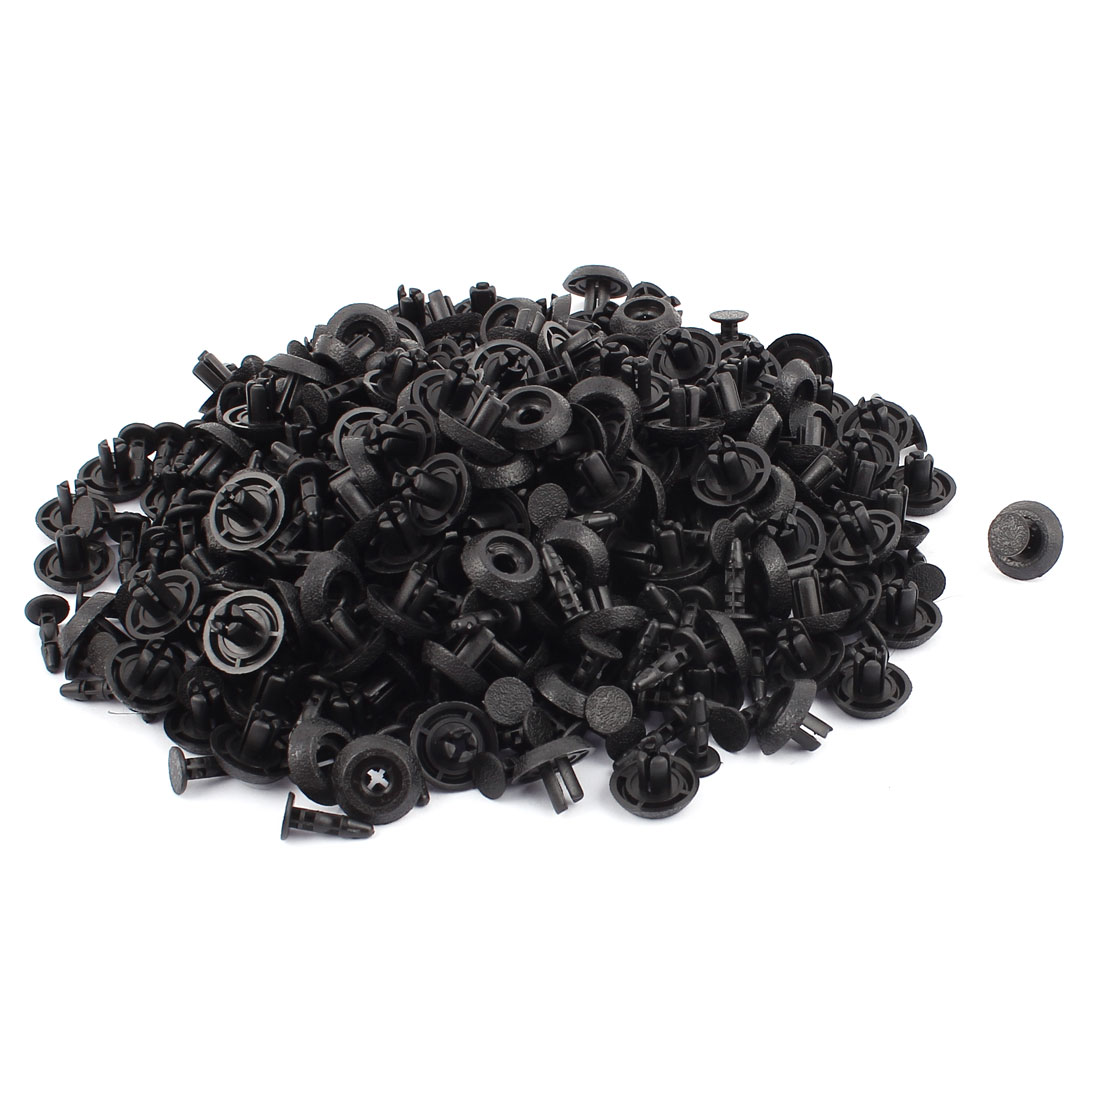 200 Pcs 8mm Hole Plastic Rivets Fastener Auto Car Fender Bumper Push Clips Black